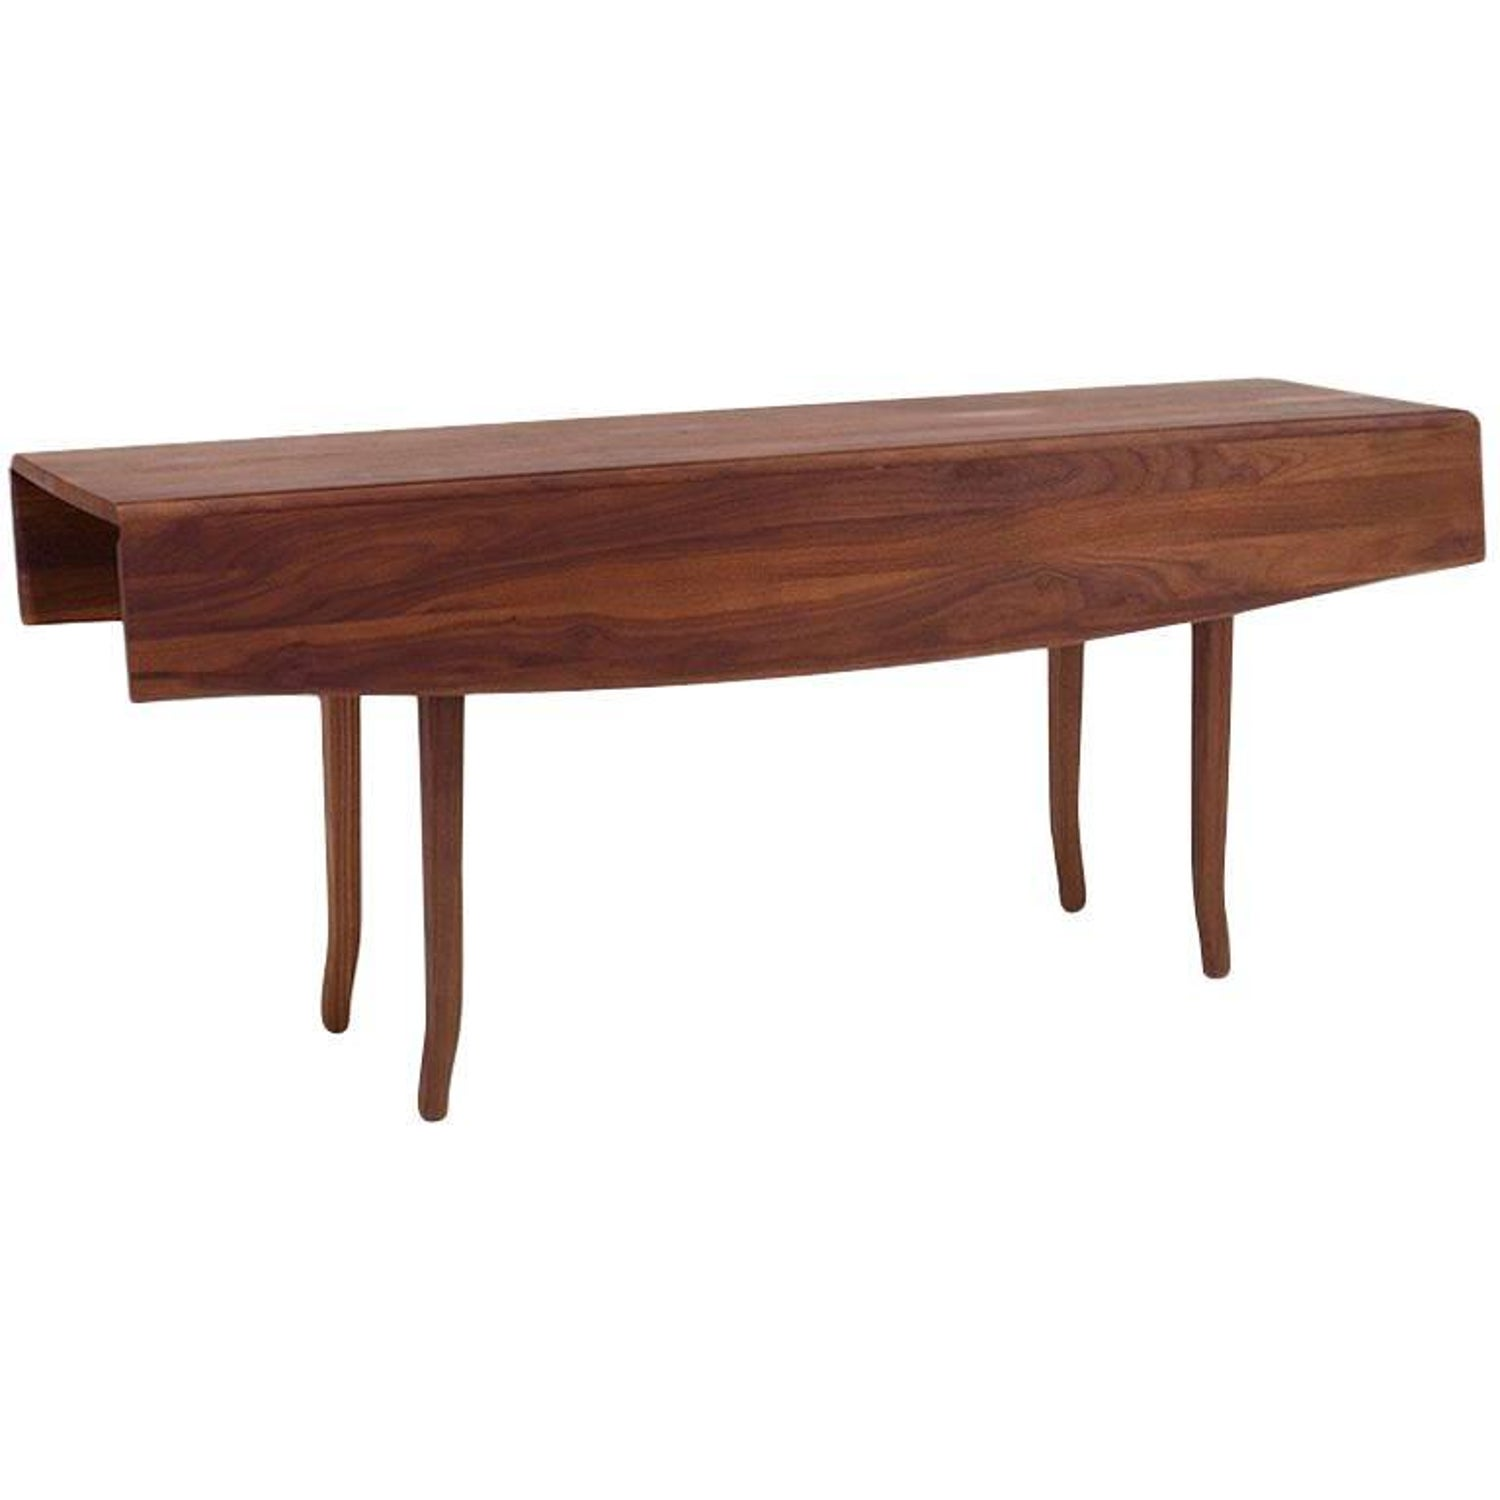 MidCentury Modern Dropleaf And Pembroke Tables For Sale At - Mid century modern gateleg table